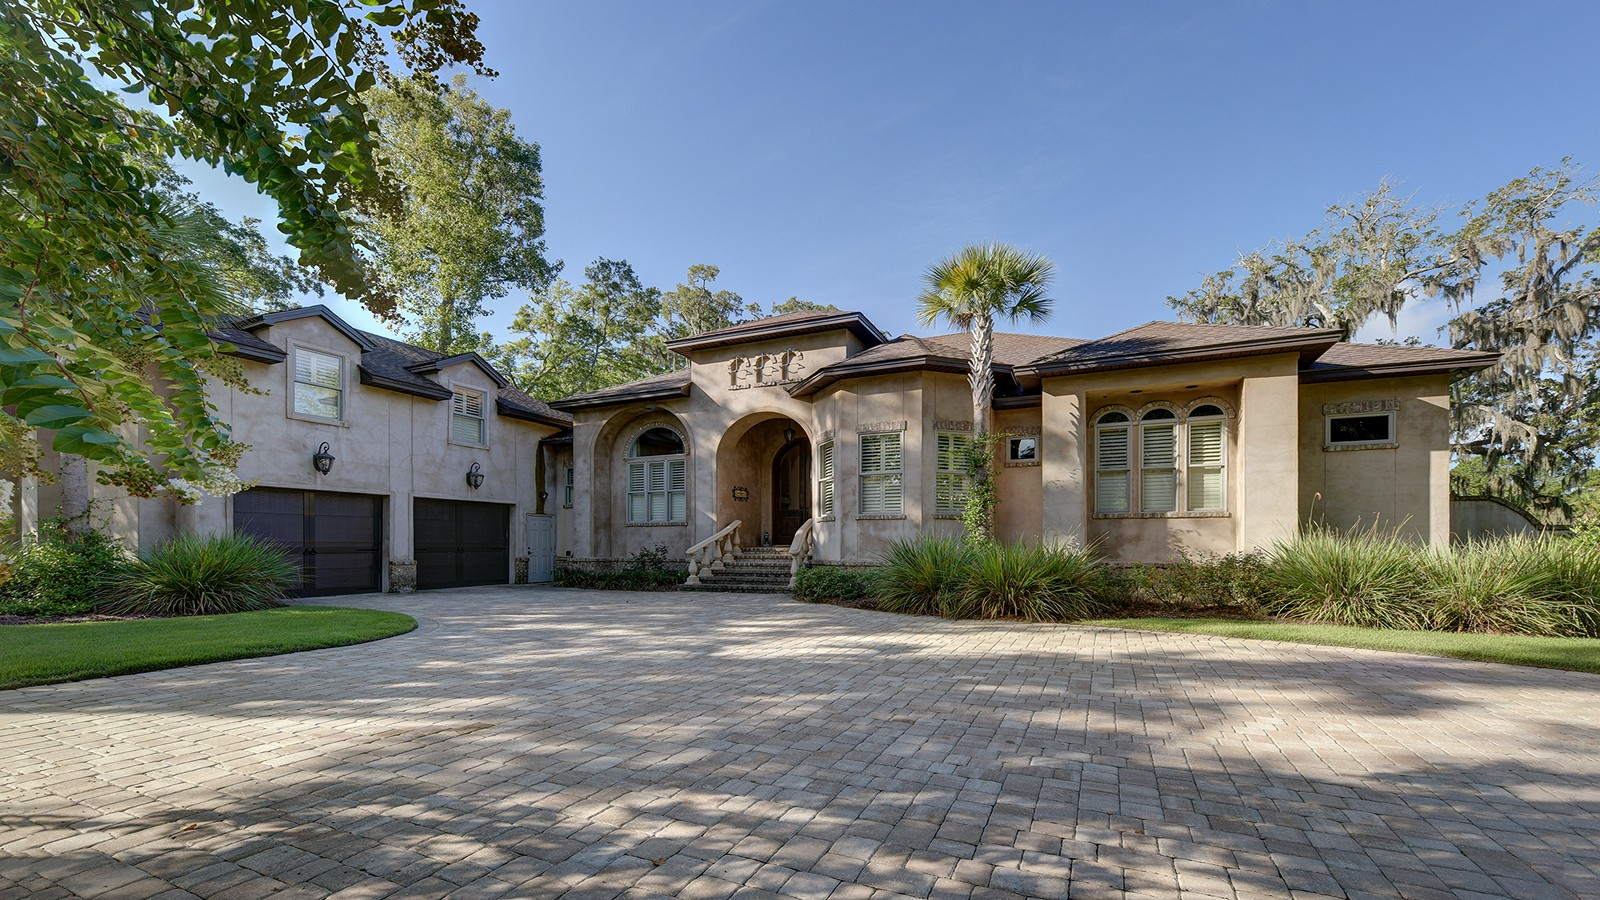 Single Family Home for Active at 127 Cypress 127 Cypress Point St. Simons Island, Georgia 31522 United States